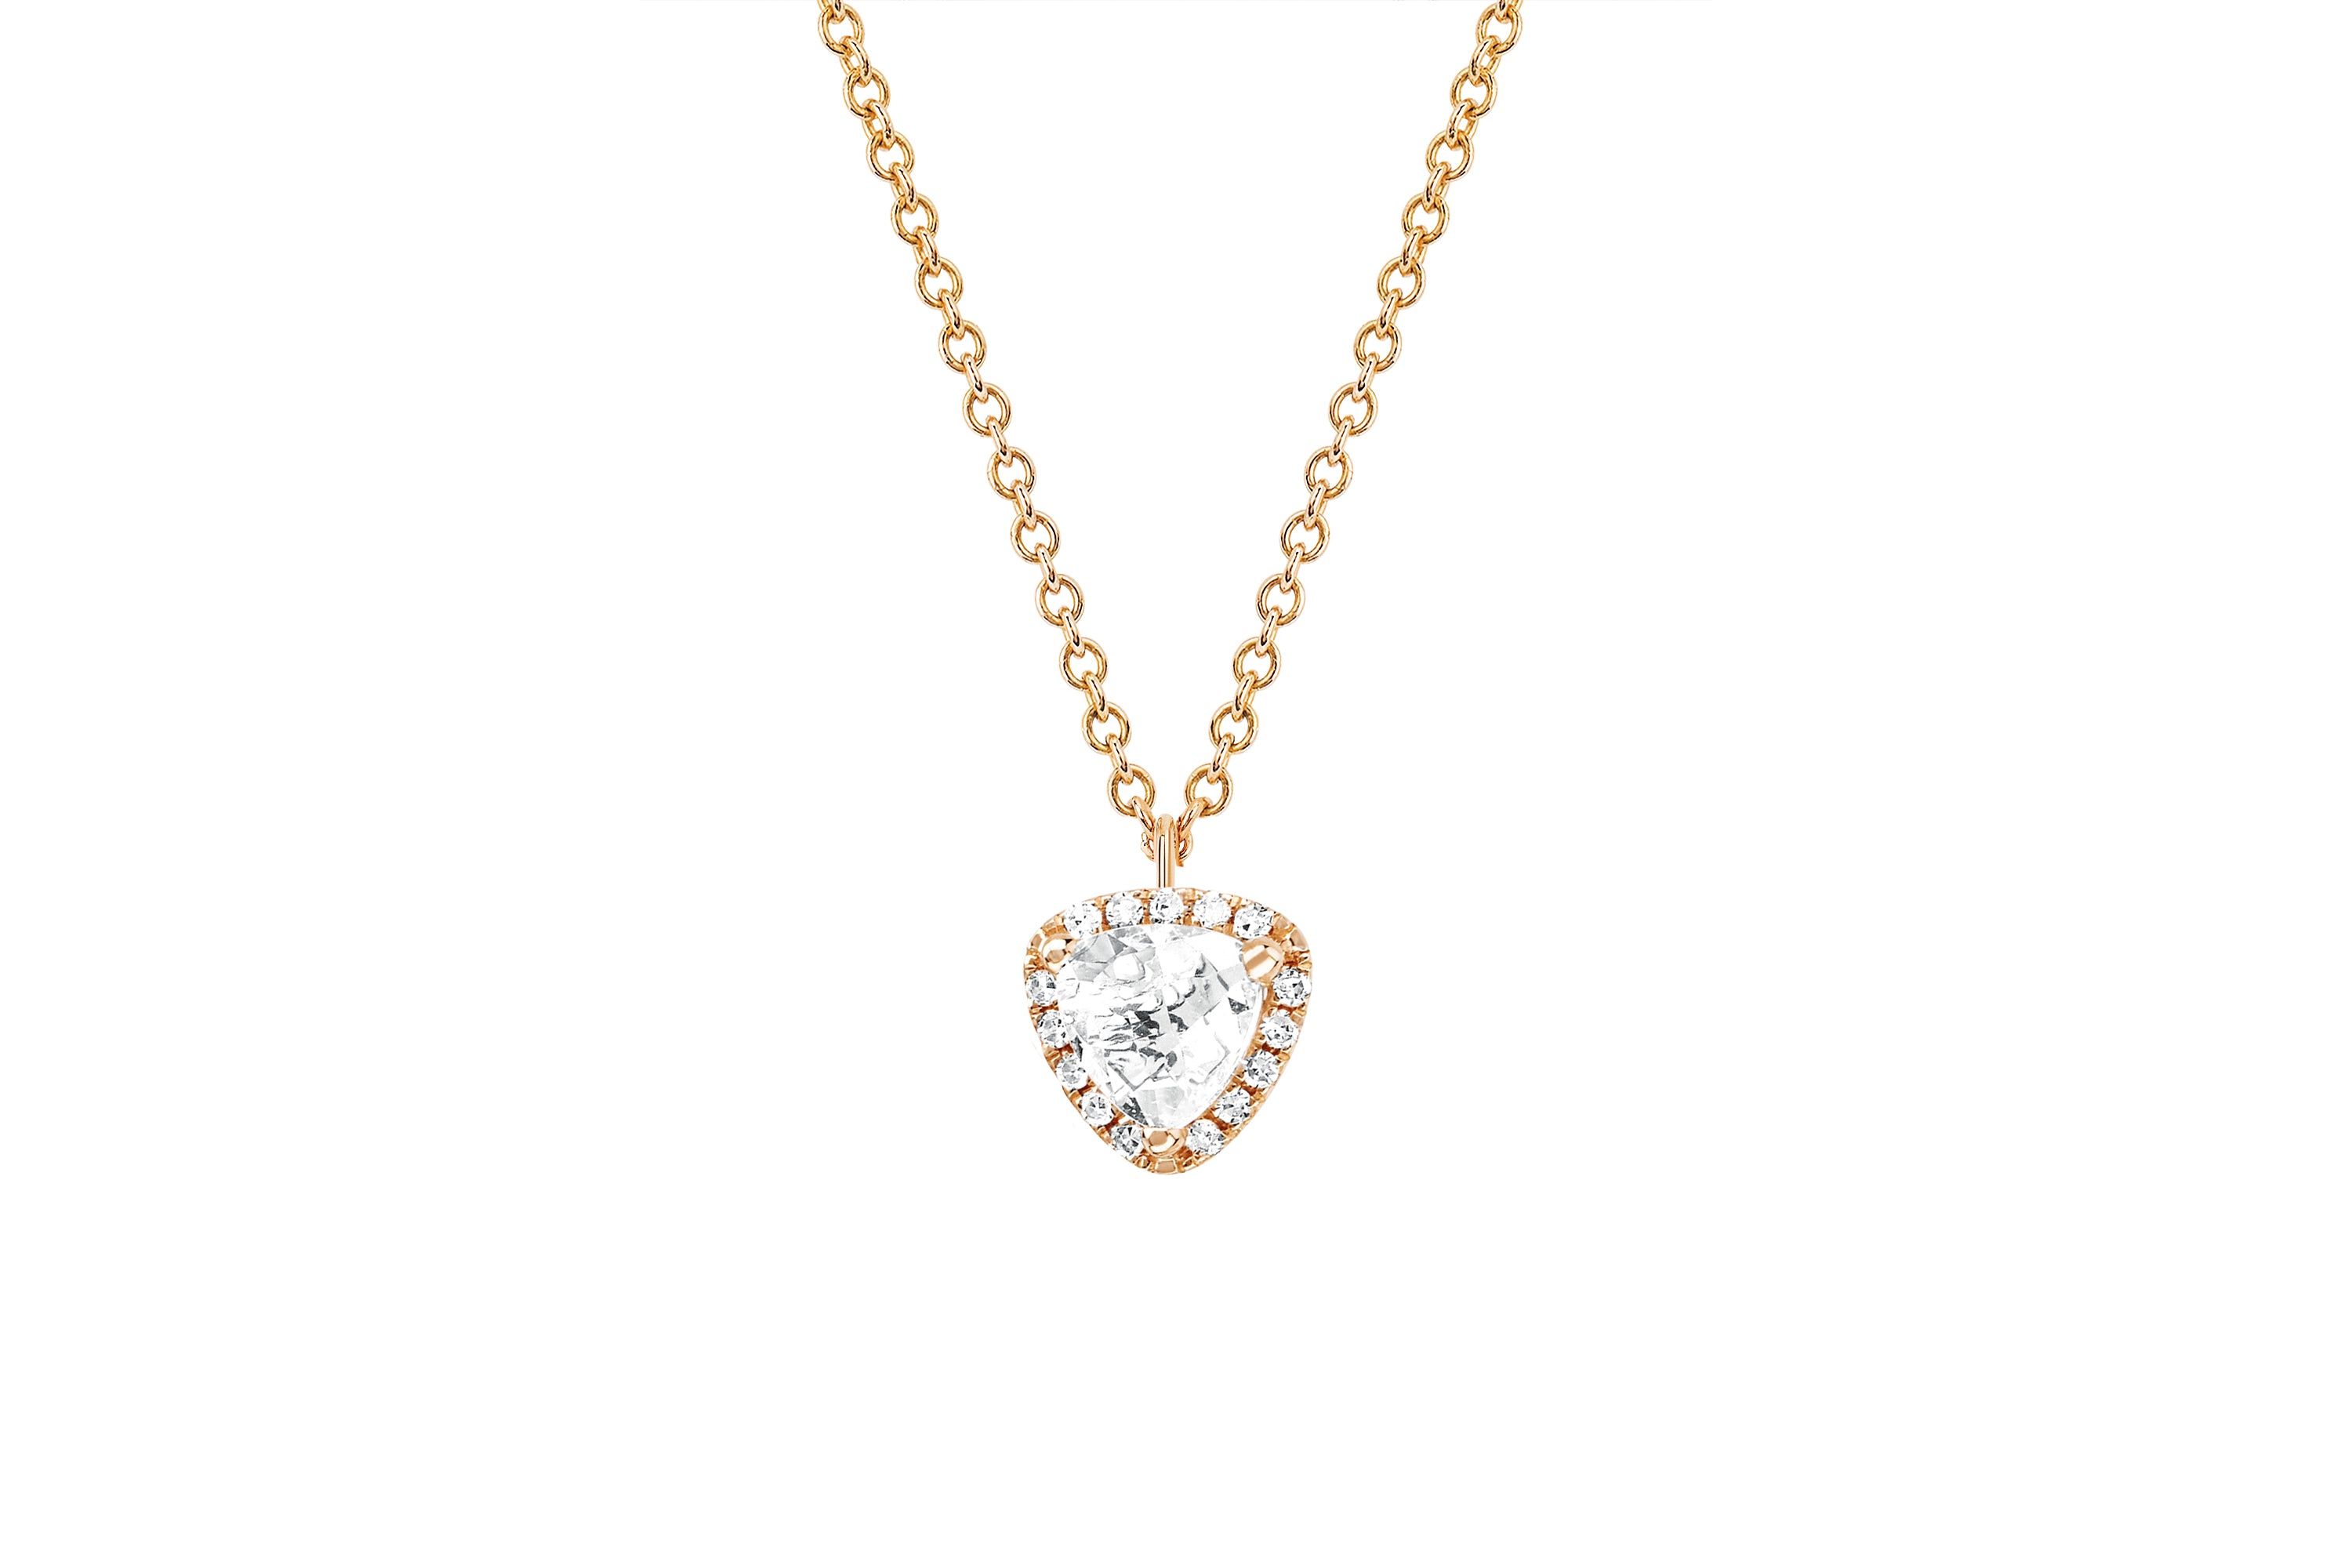 Diamond & White Topaz Trillion Necklace